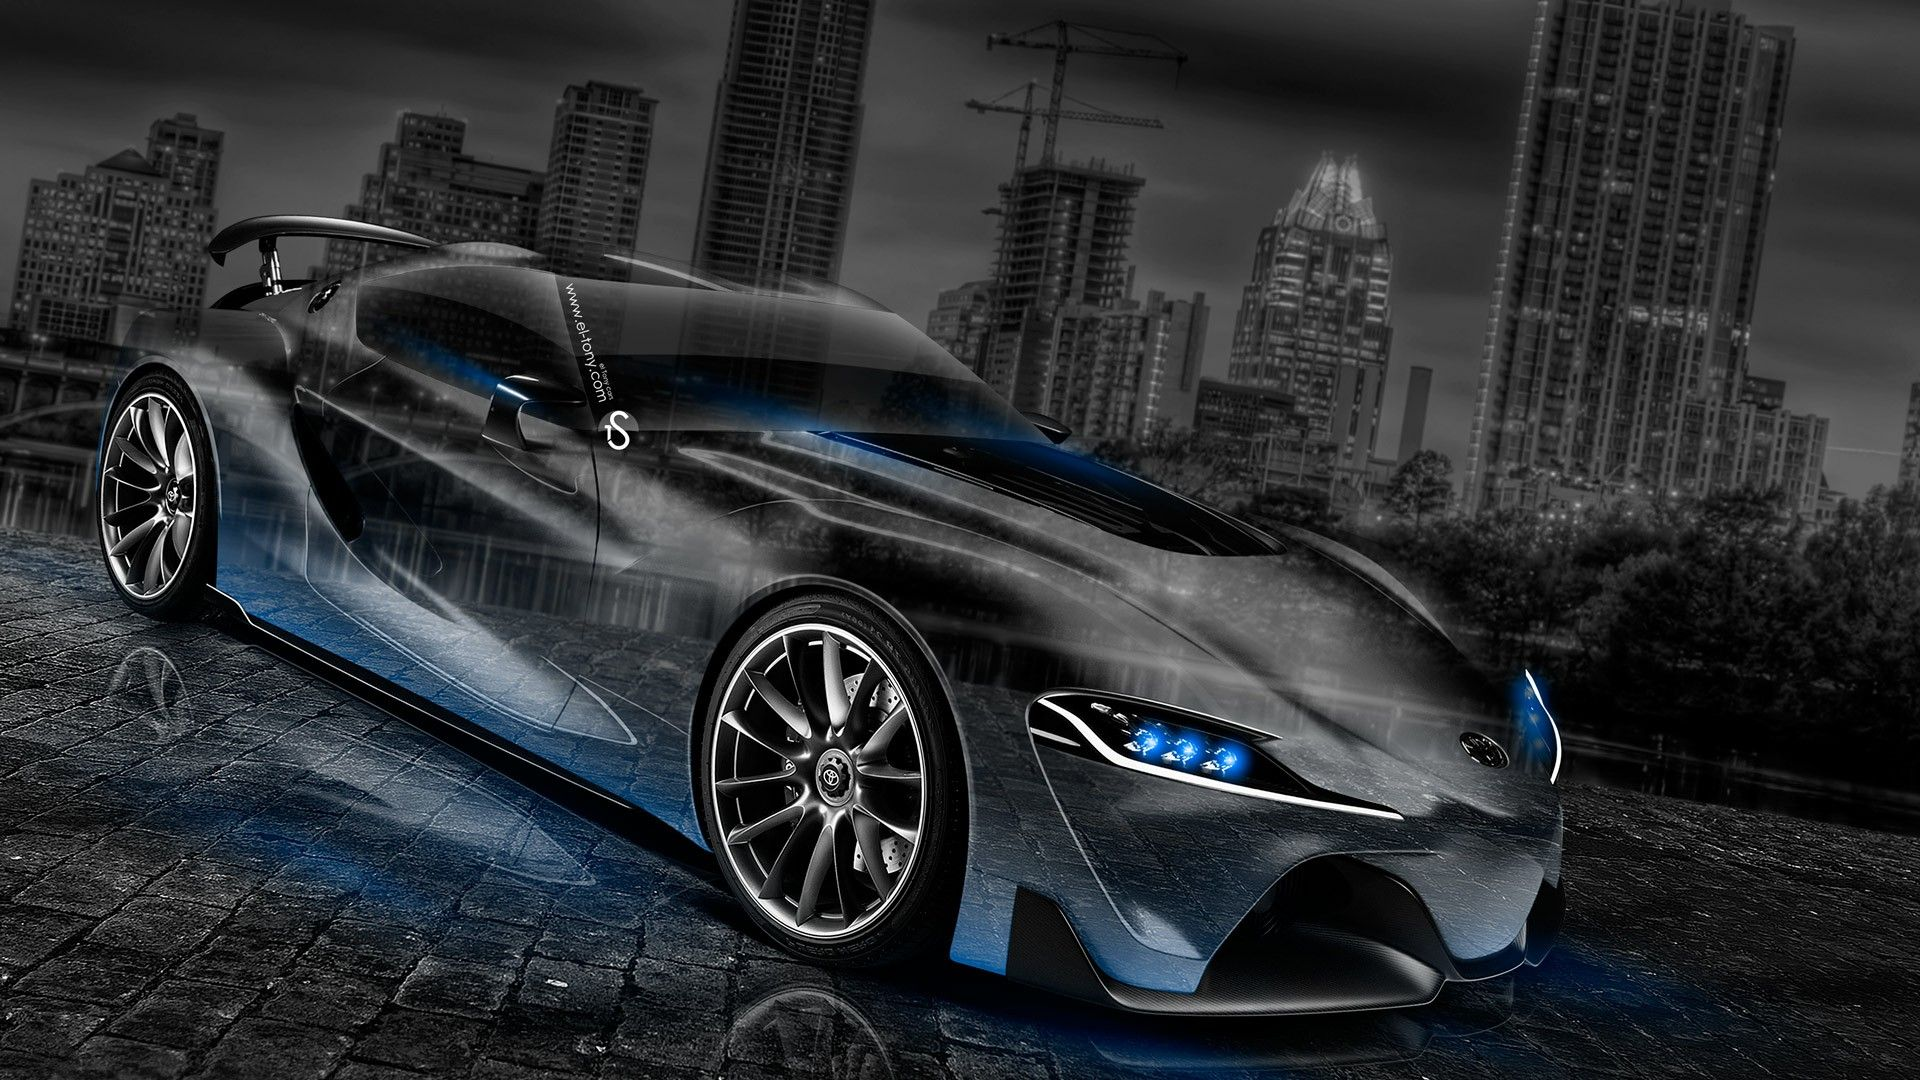 Exceptionnel Toyota Supra JDM Crystal City Car 2014 « El Tony | Download Wallpaper |  Pinterest | City Car